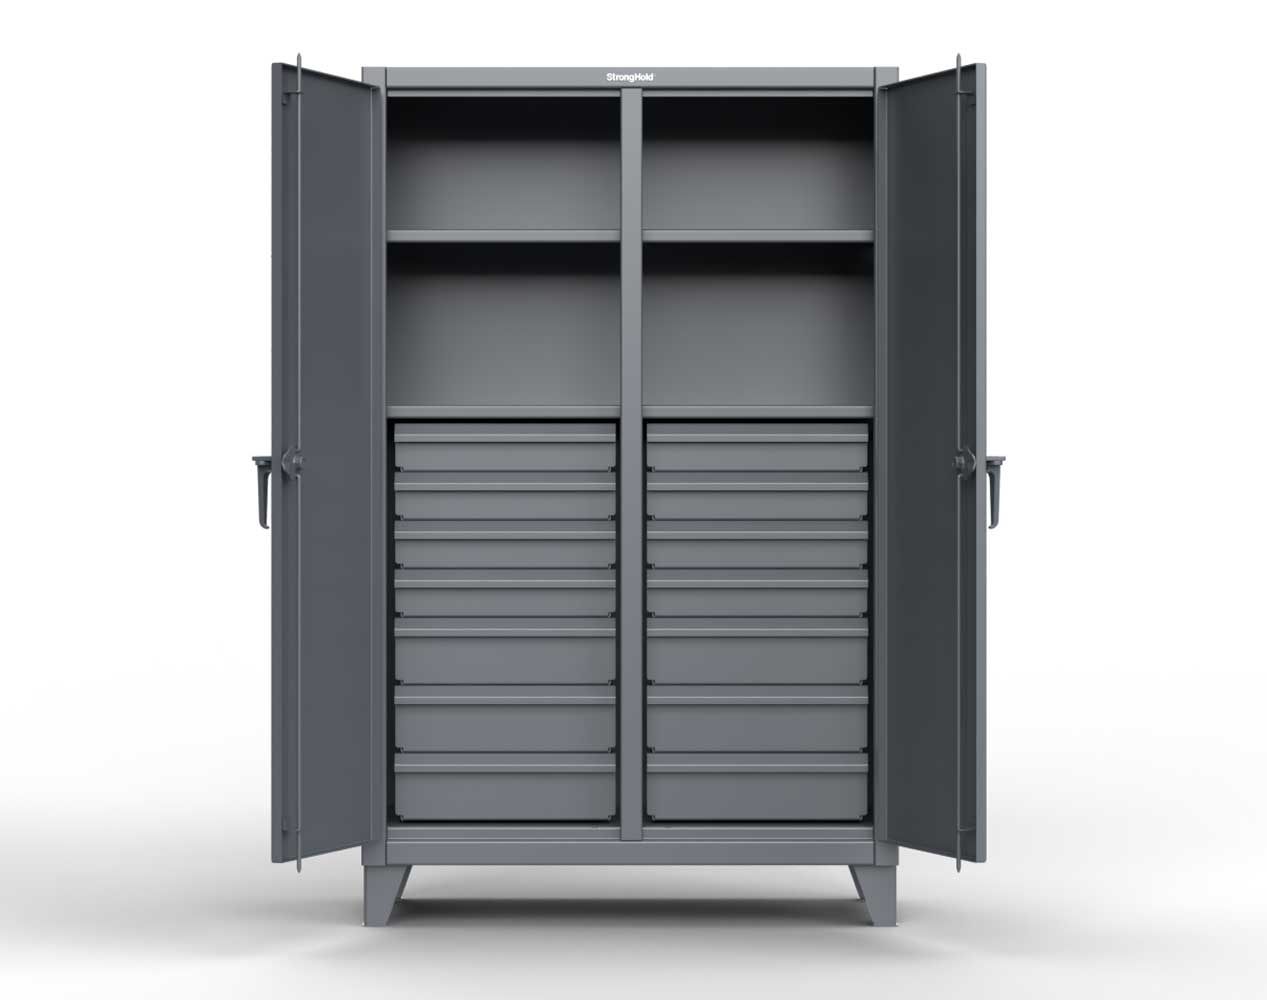 Extreme Duty 12 GA Double Shift Cabinet with 14 Drawers, 4 Shelves – 60 In. W x 24 In. D x 78 In. H